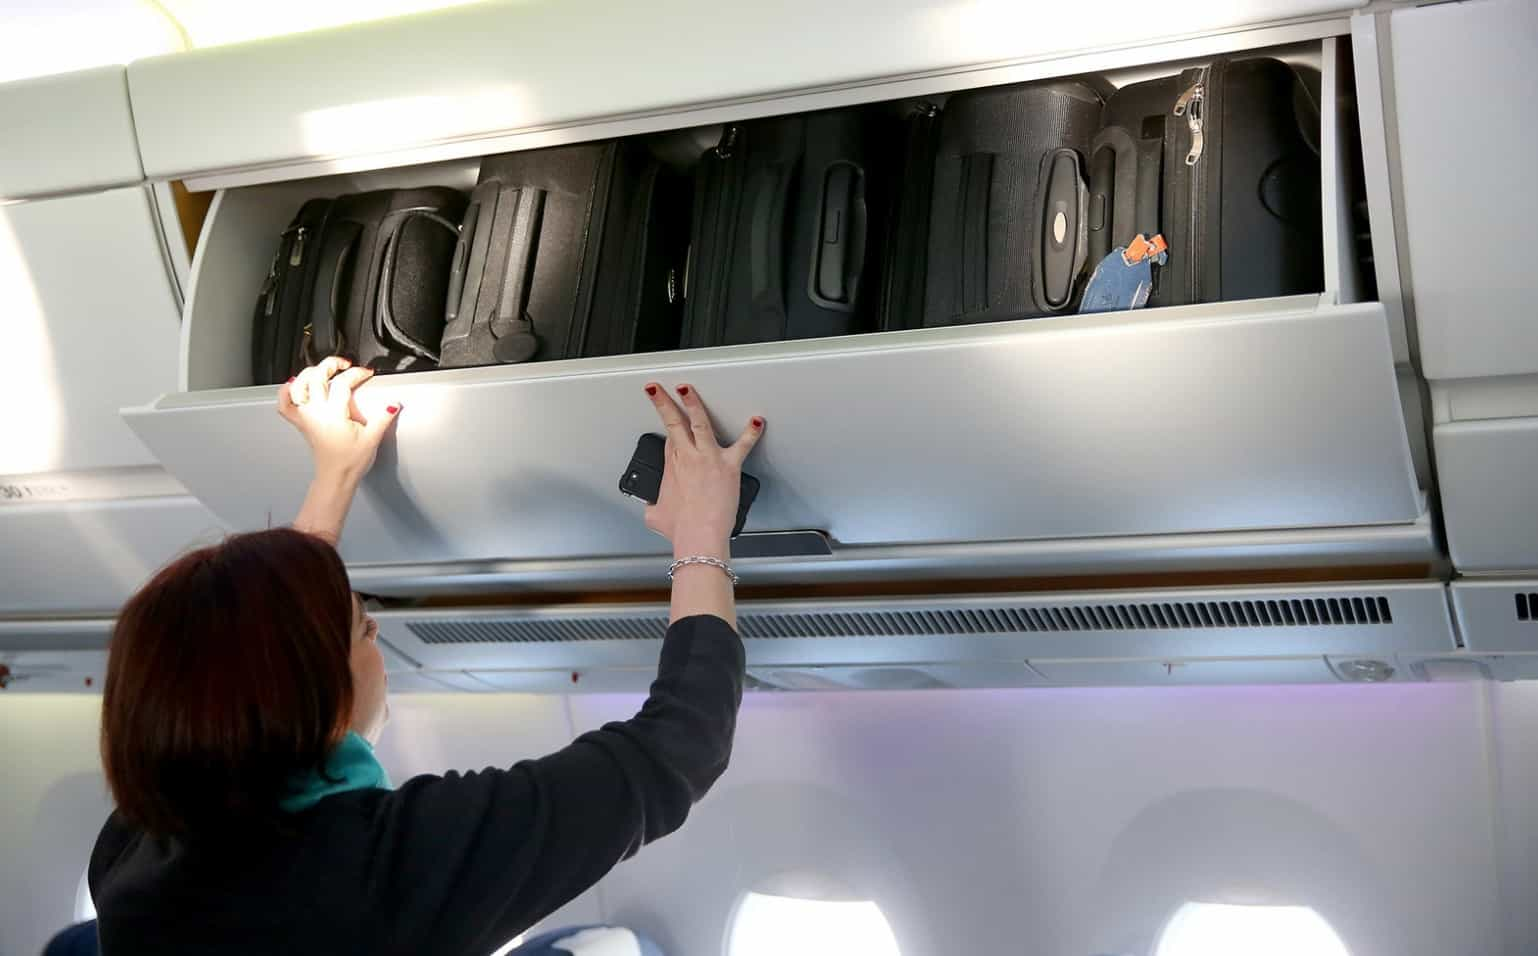 Flying With Your Musical Instrument, Part 2; The musician-friendly airlines